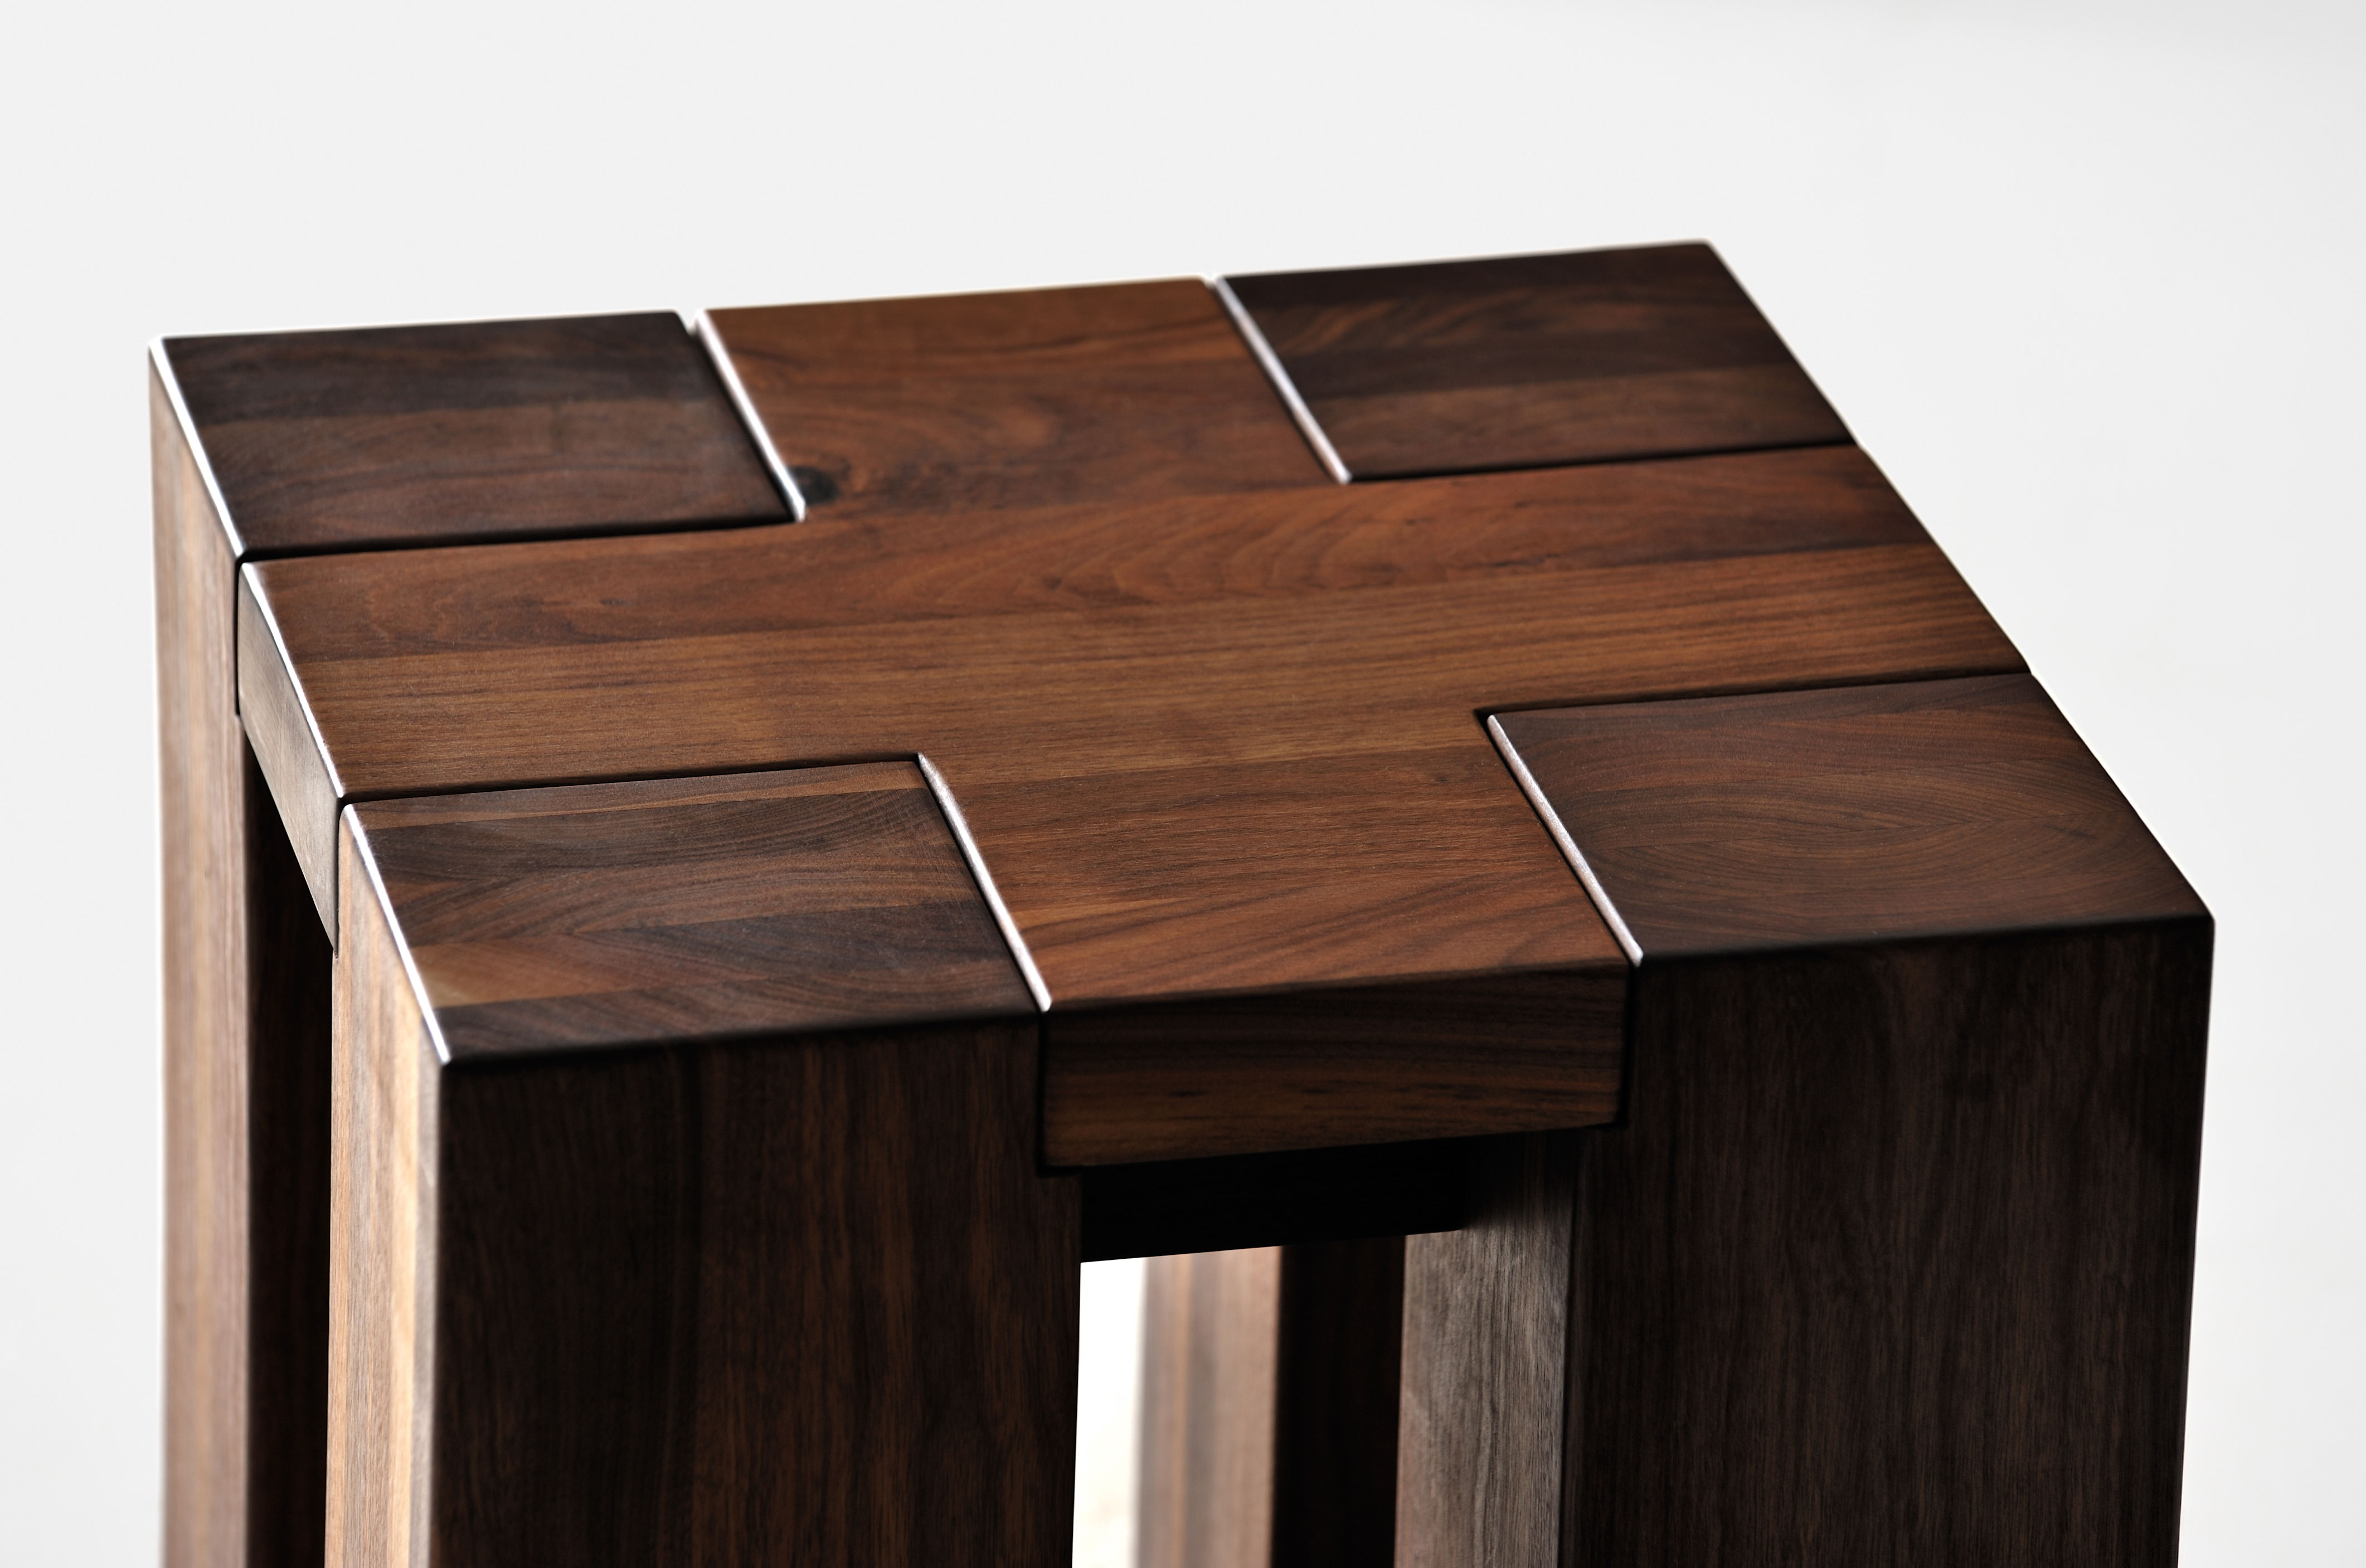 Rustic Oak Stool TAURUS 4 B14X14 tt44b custom made in solid wood by vitamin design